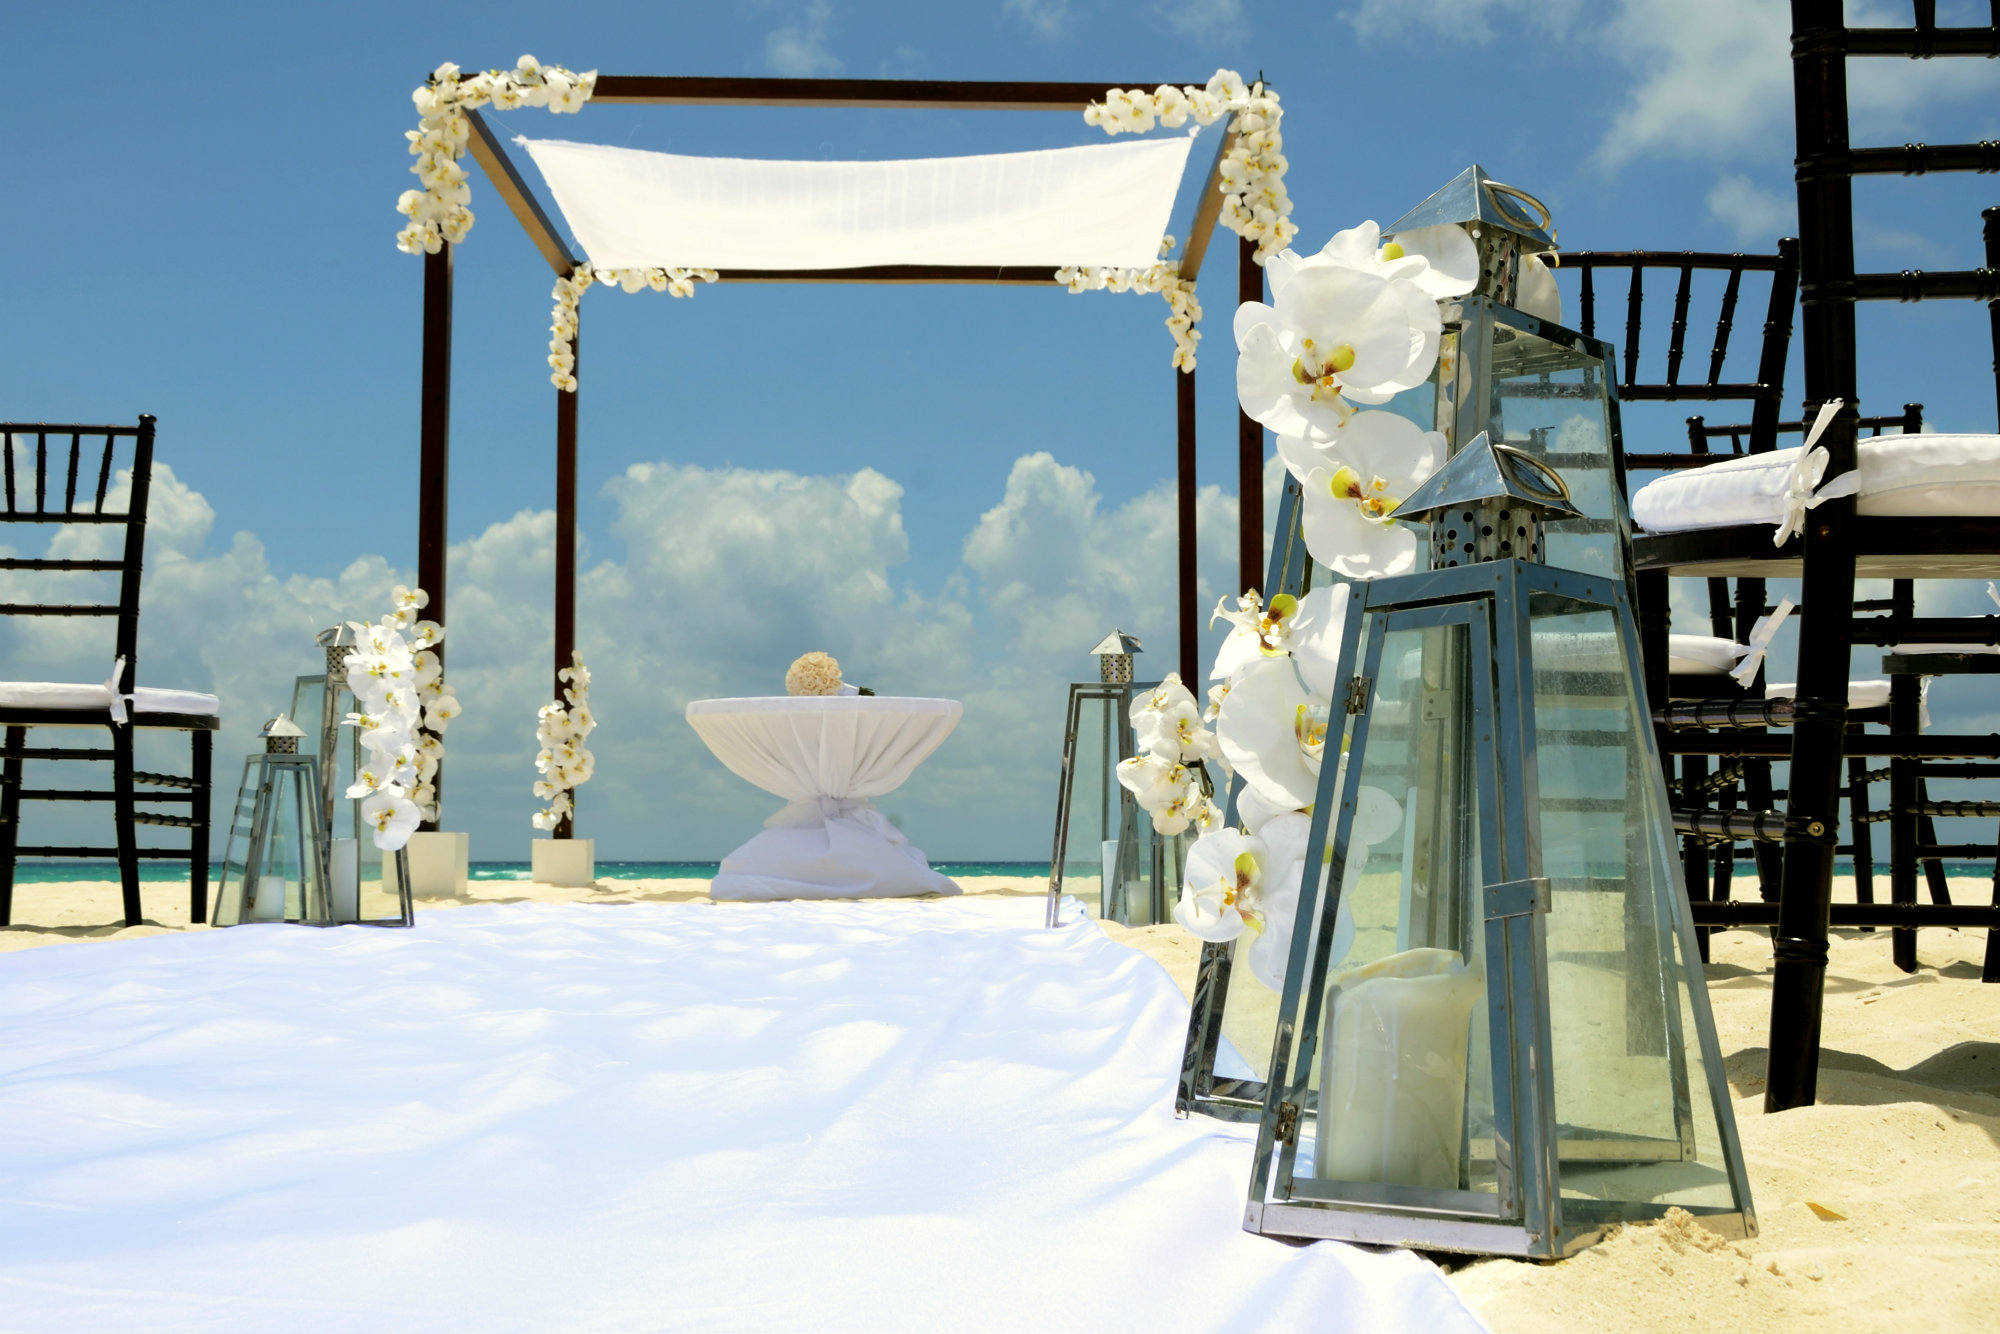 http://barceloweddings.com/uploads/85d6f6f4c0c1c4126508ecc33aeaee60.jpg